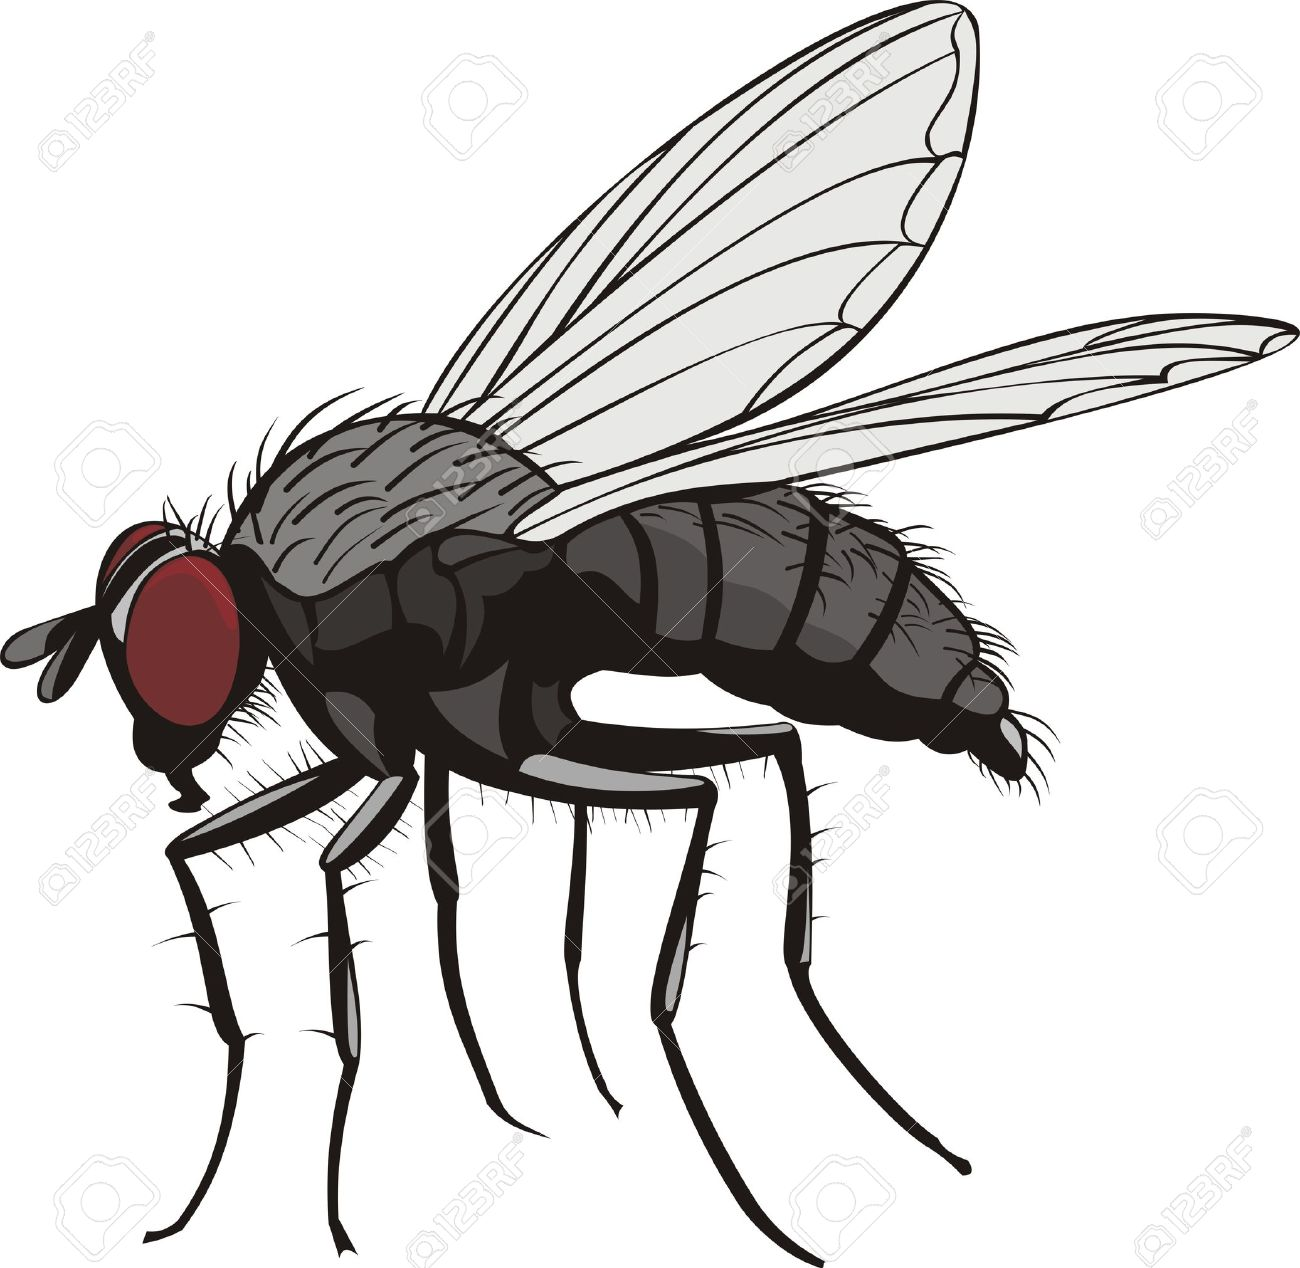 House fly flying clipart.